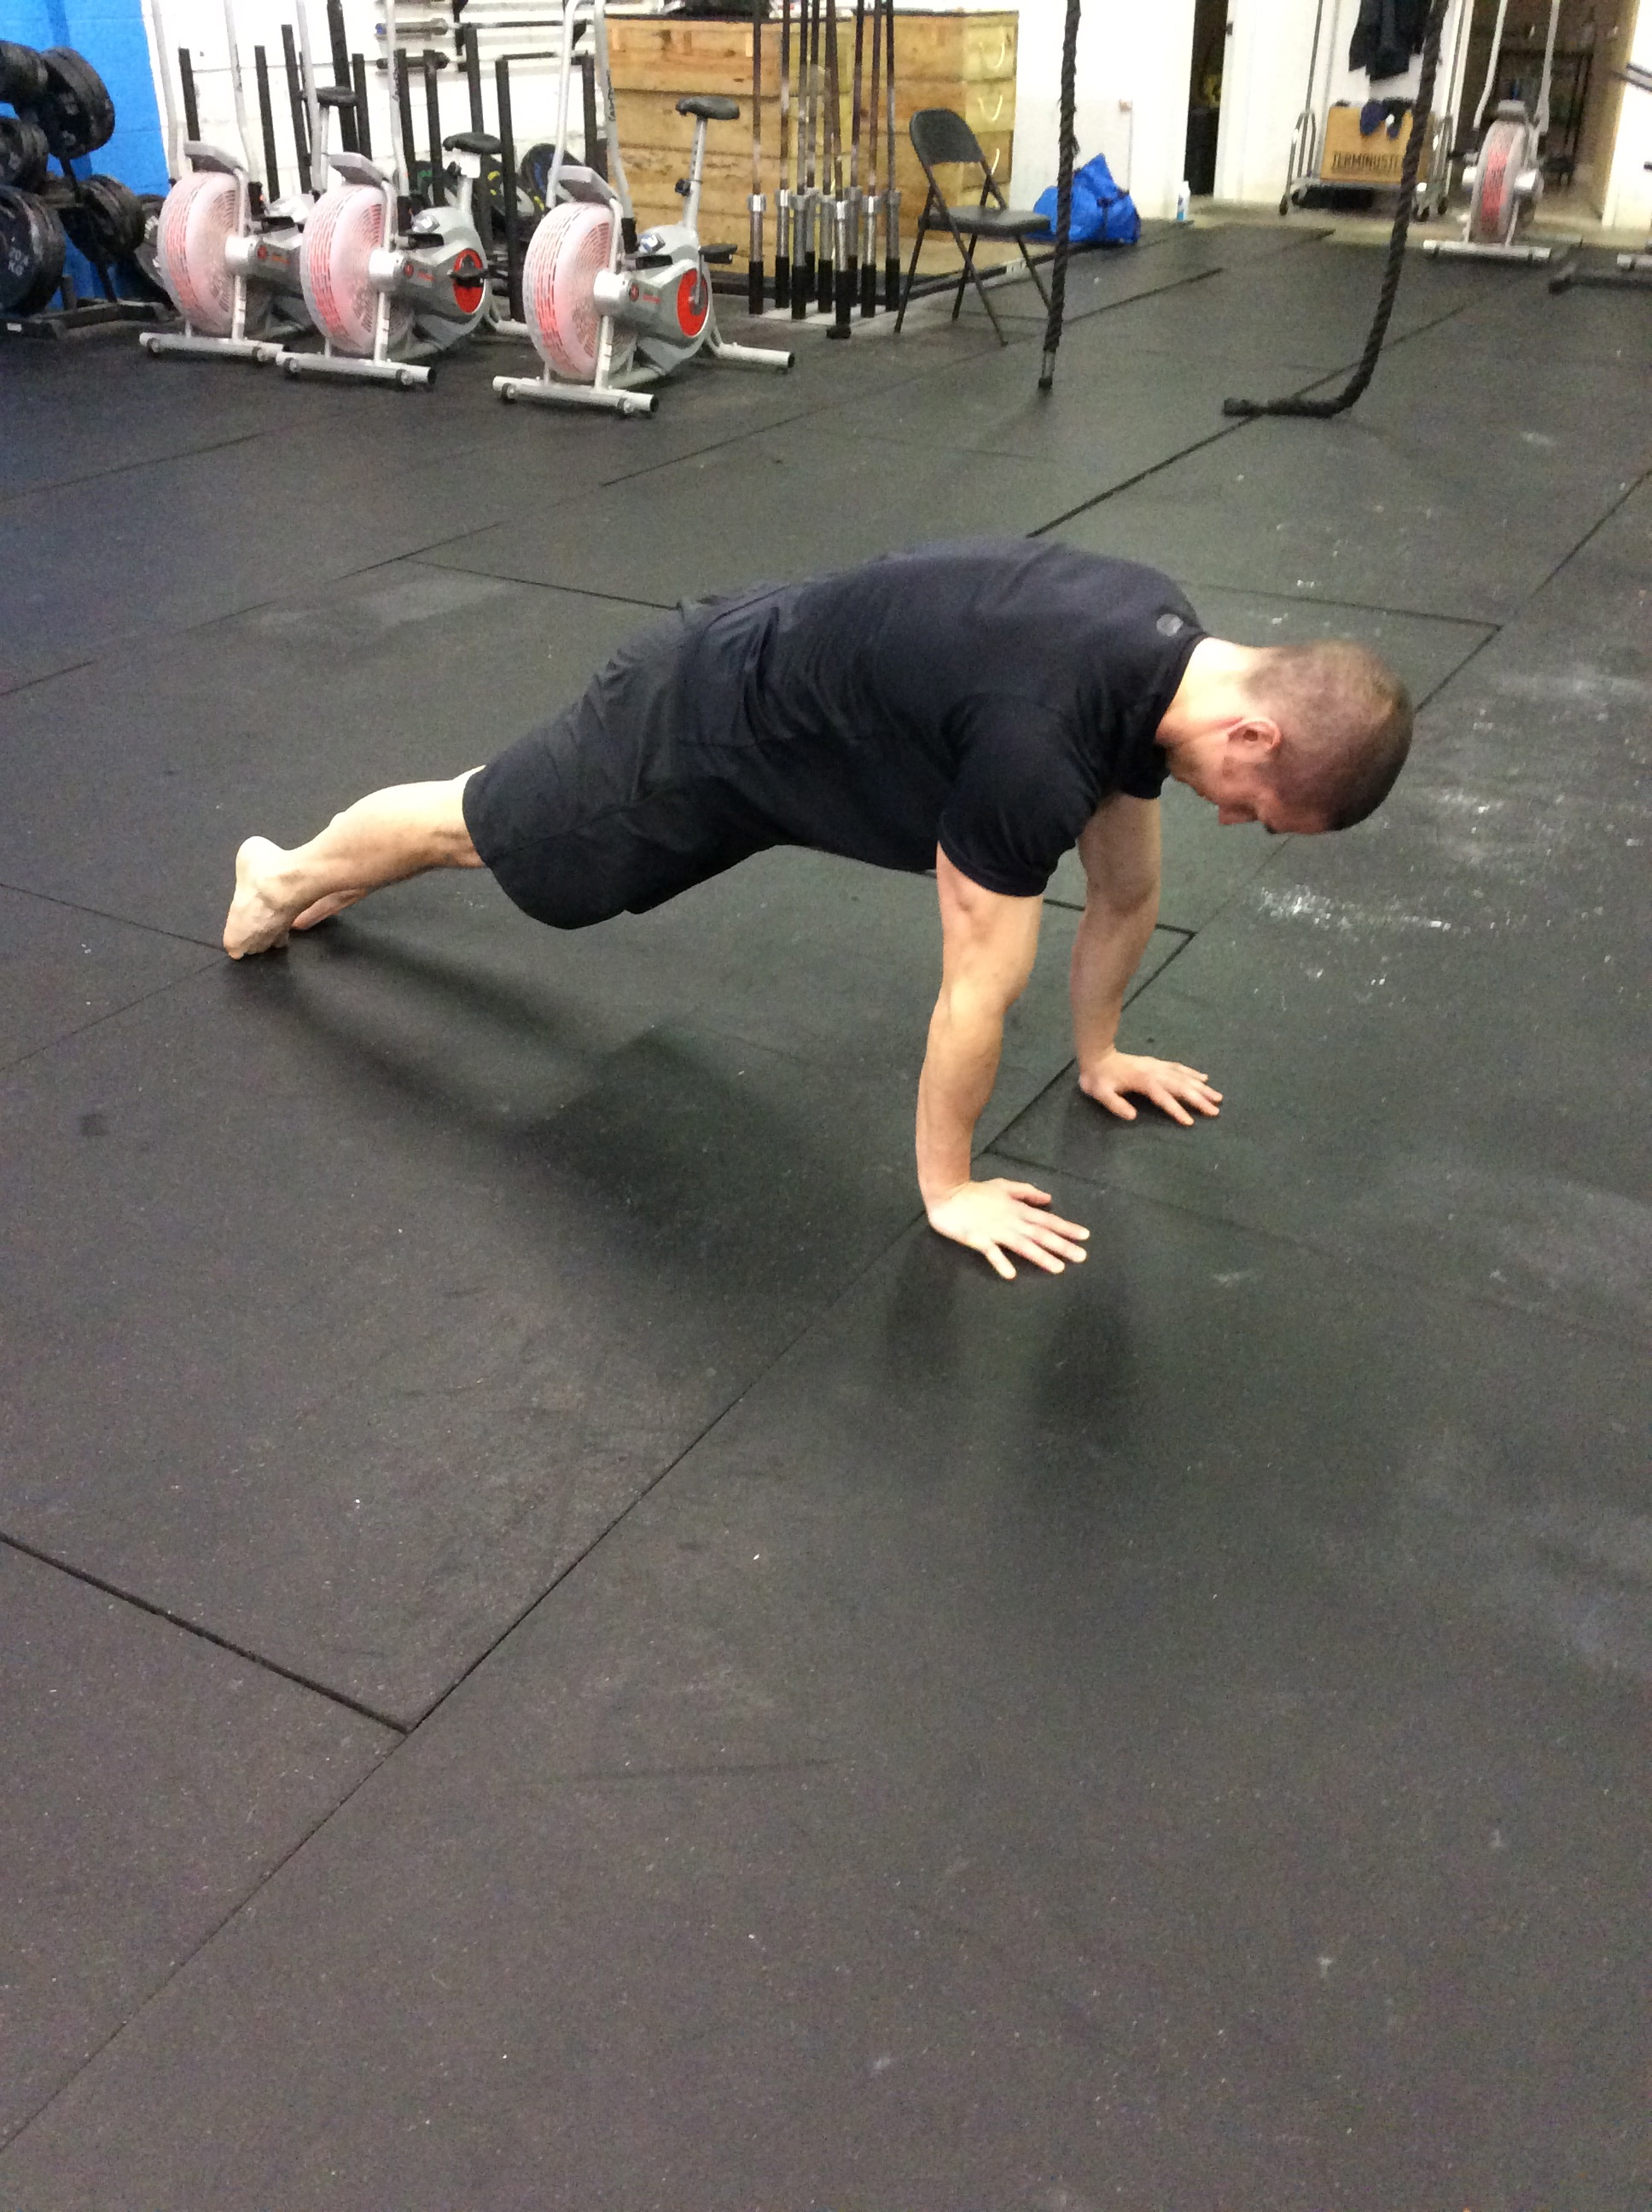 Am I holding a plank or stopping at the top of a push-up?